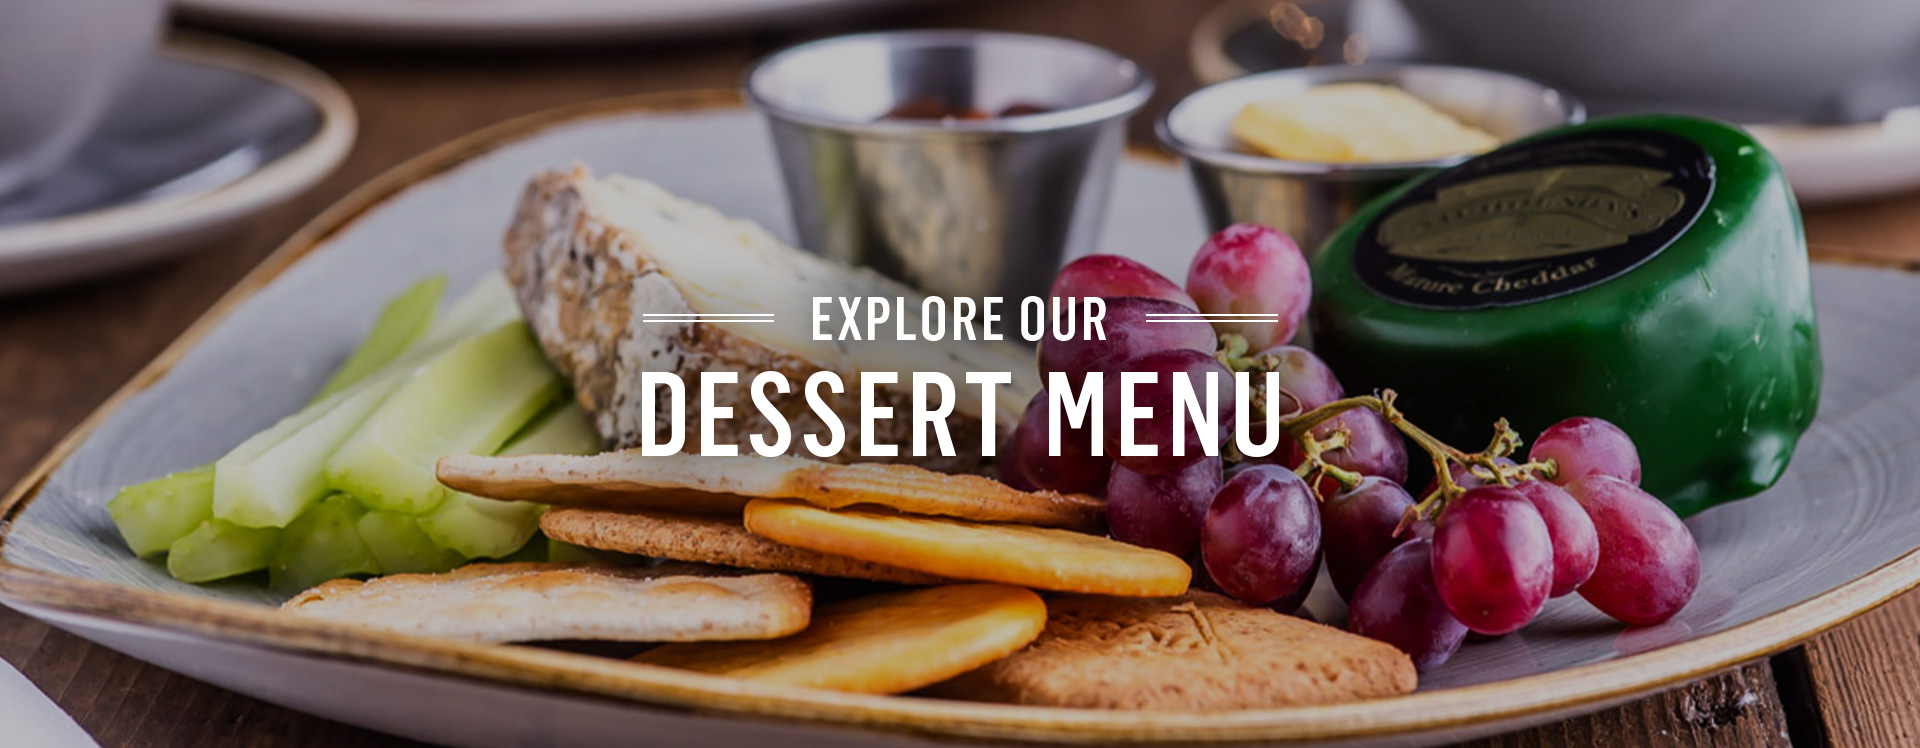 Dessert menu at The Crown - Book a table